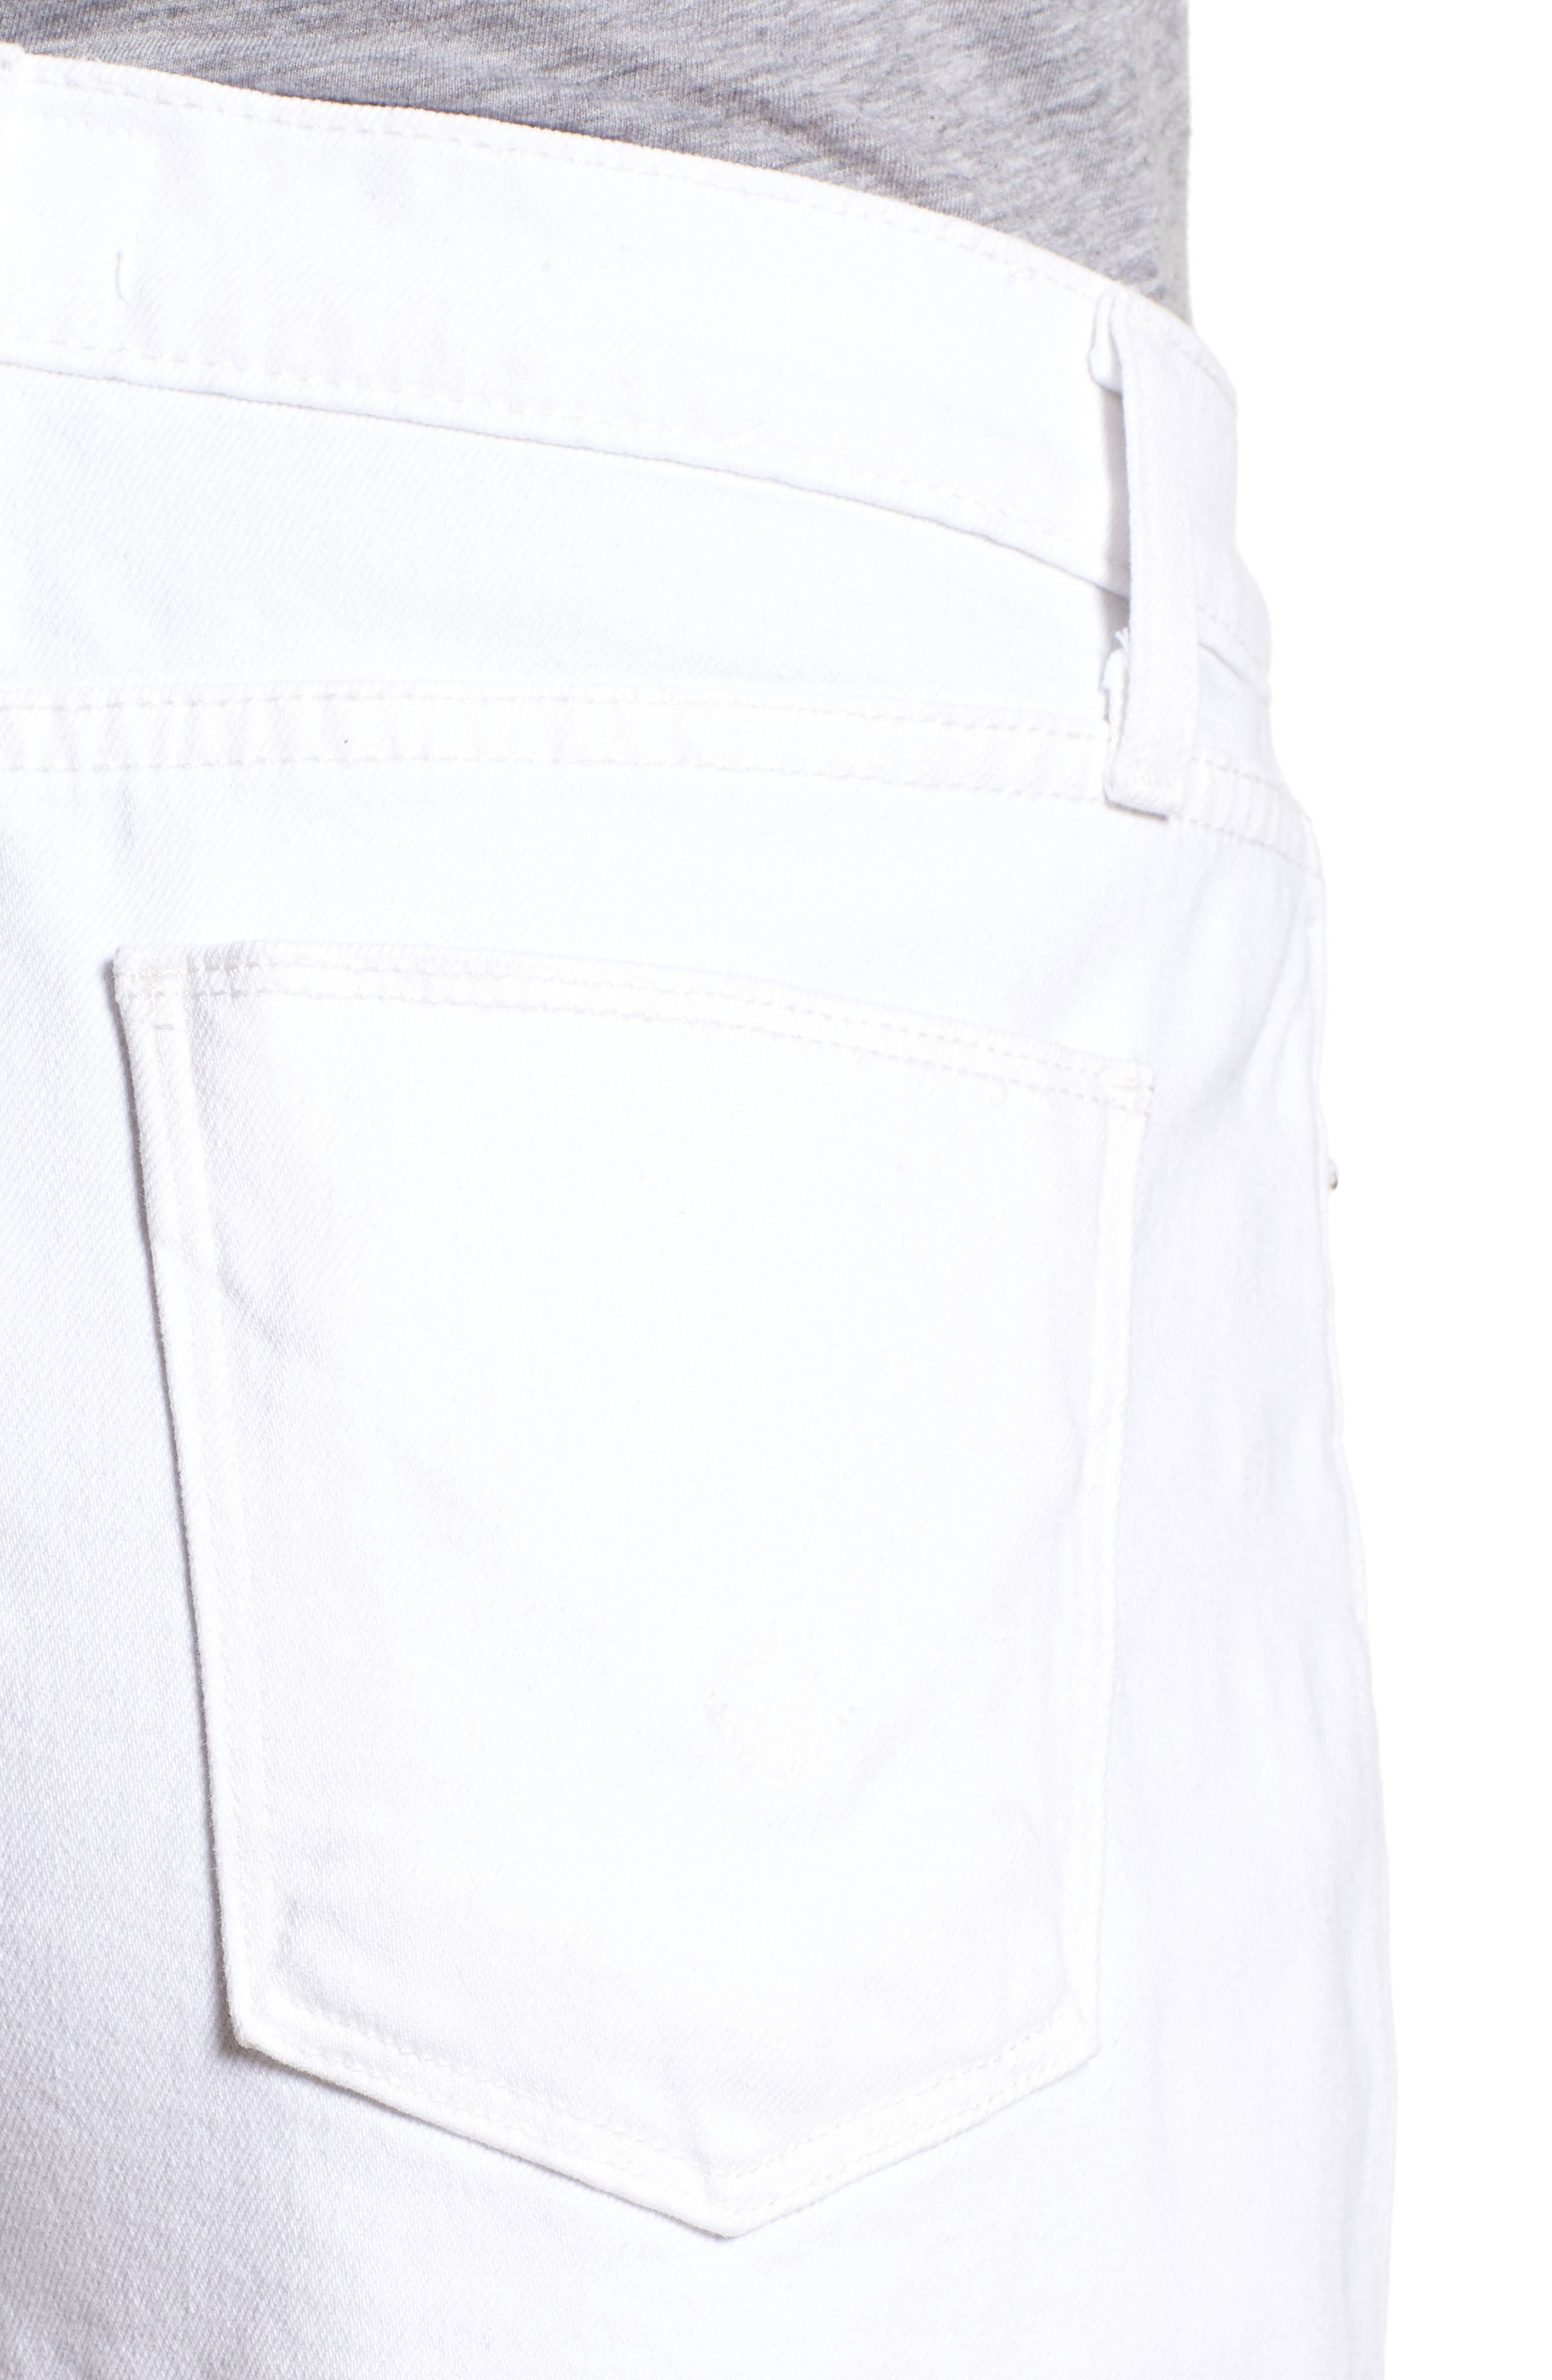 Zoeey Button Fly High Waist Denim Shorts,                             Alternate thumbnail 4, color,                             White